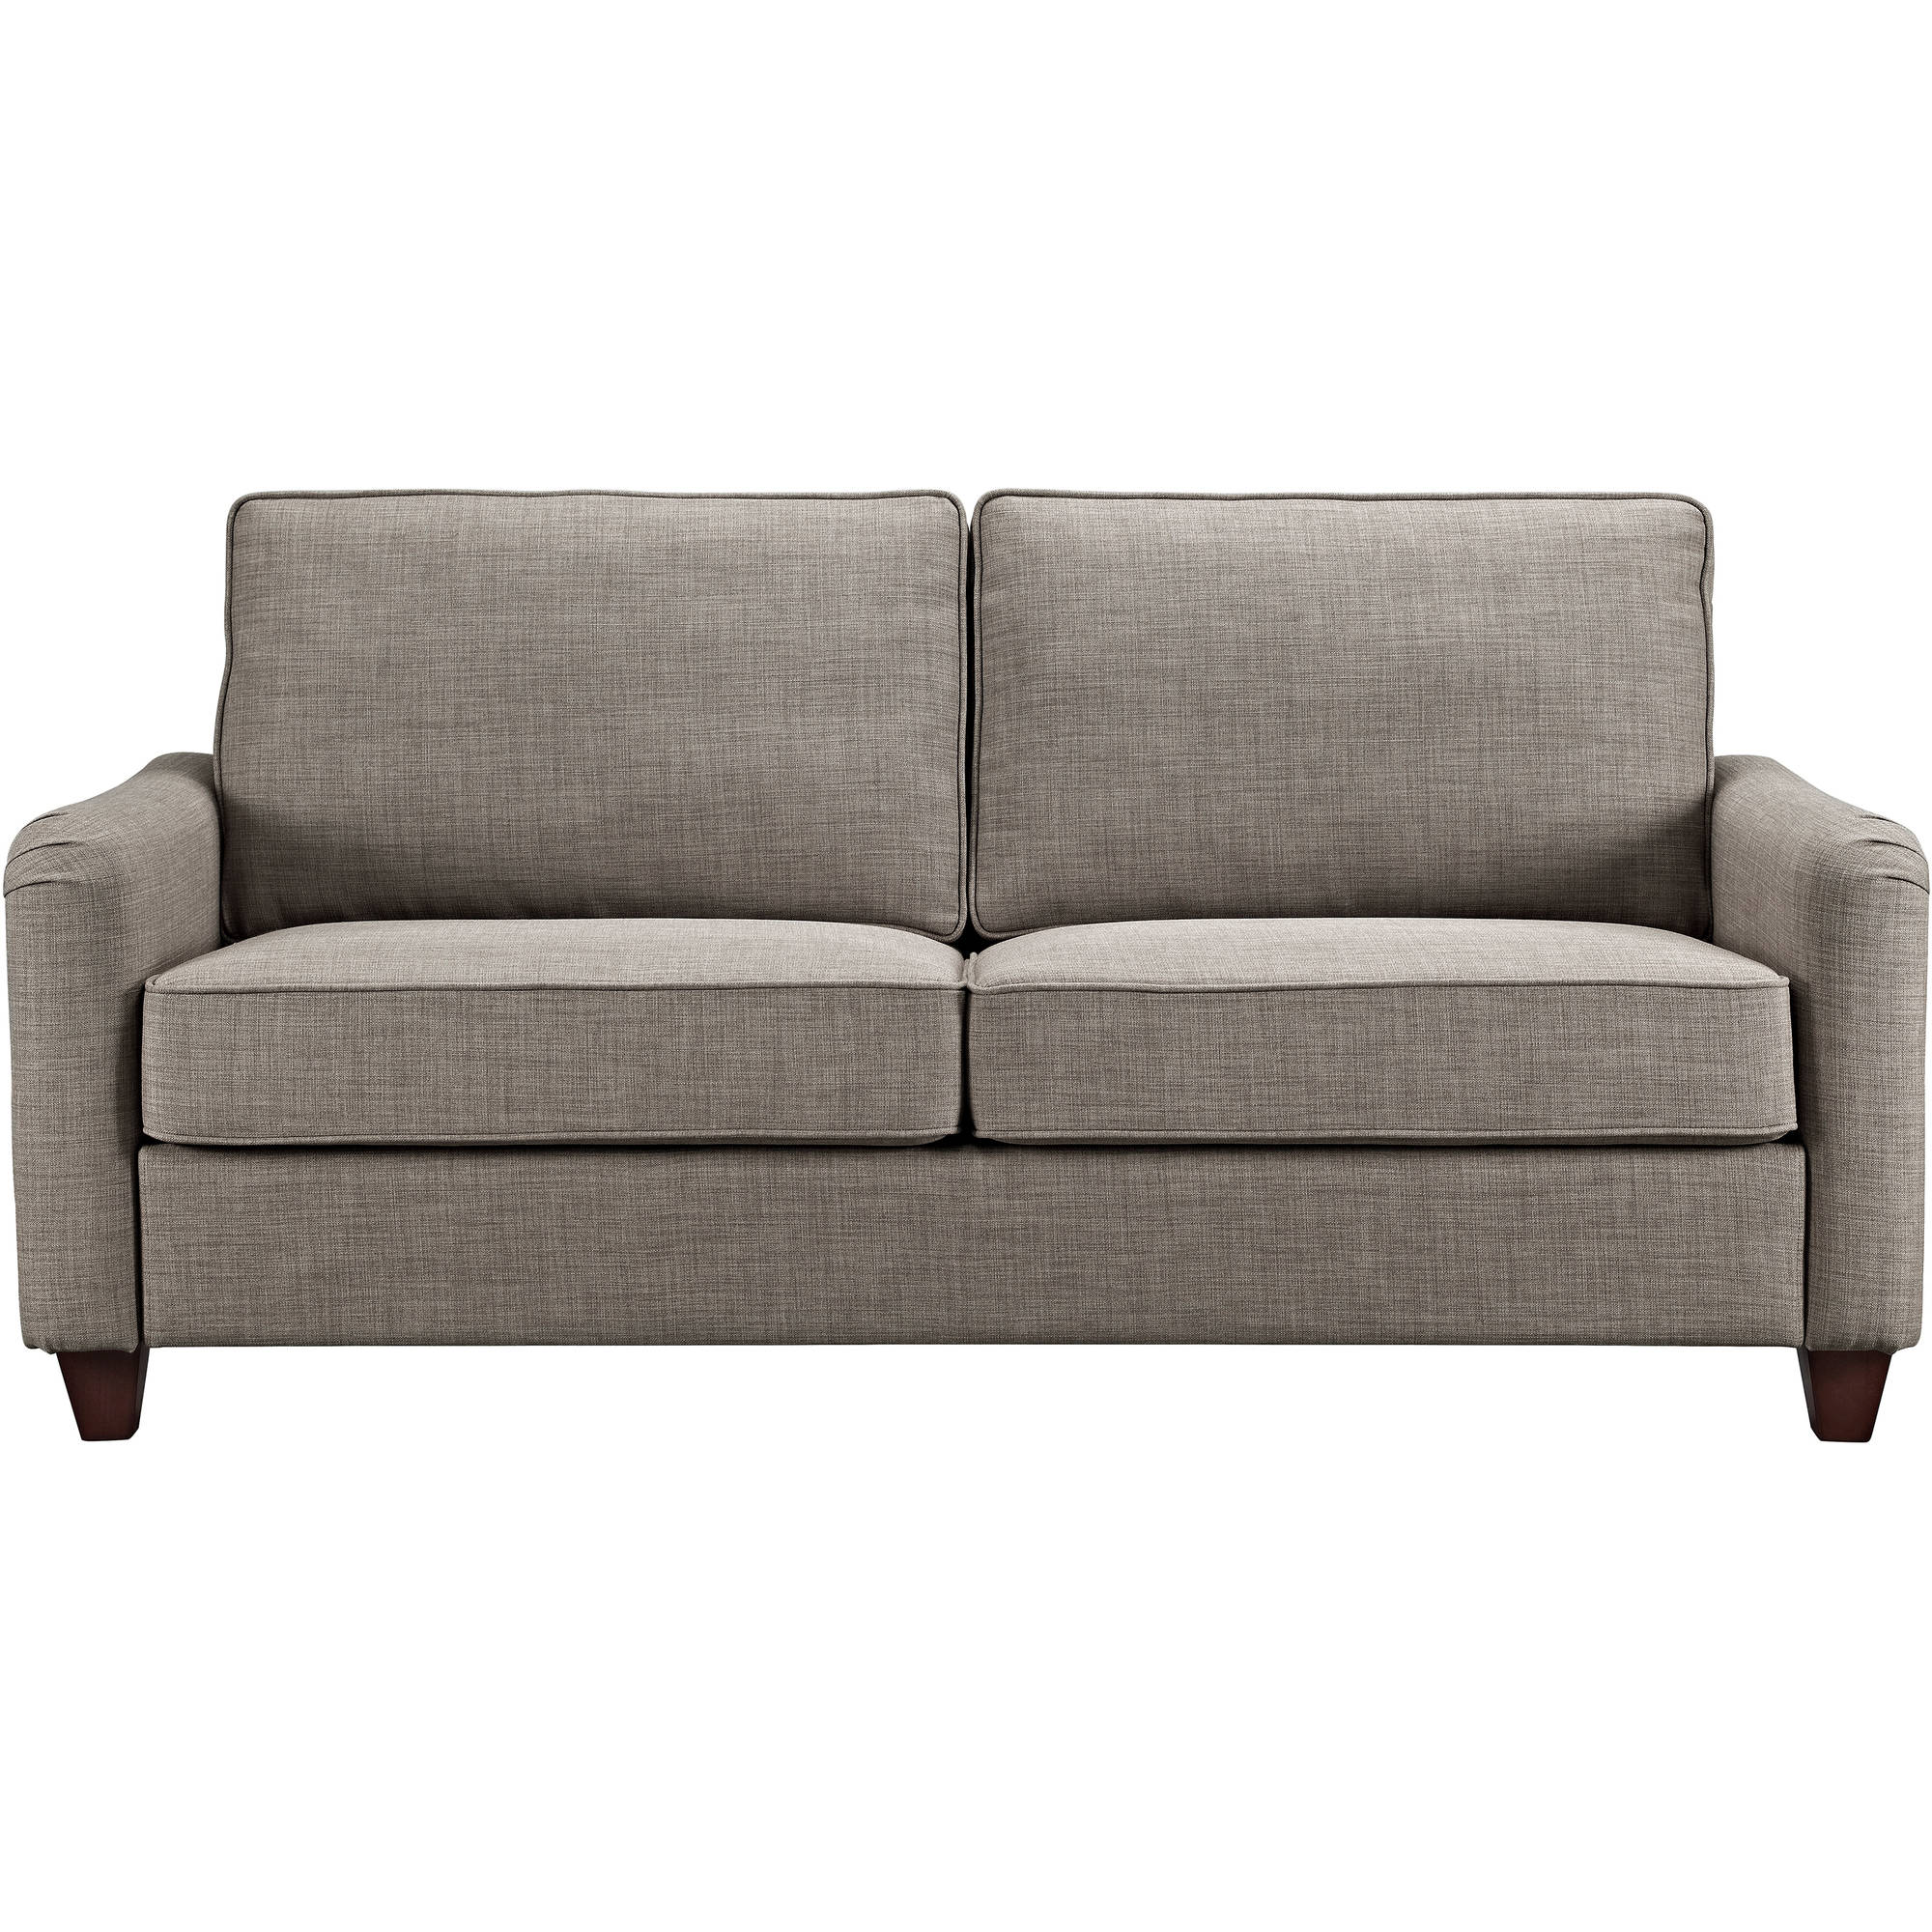 Living room furniture for Cheap living room couches